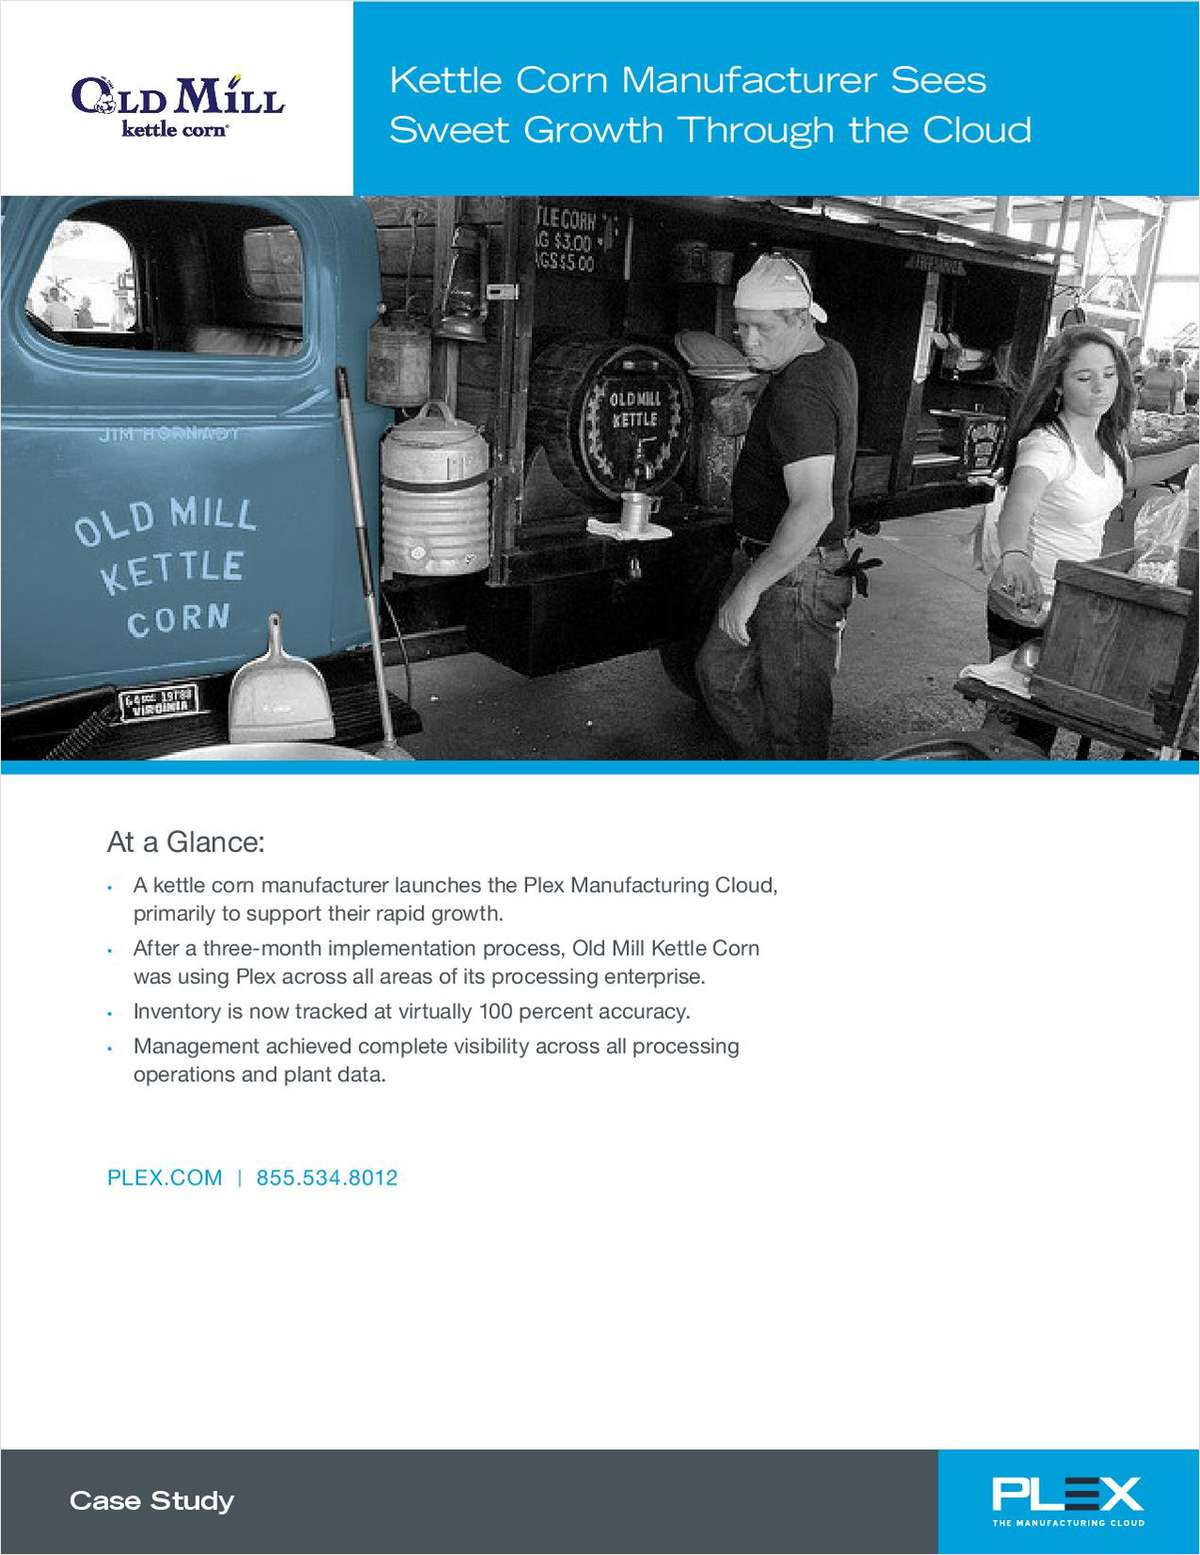 Kettle Corn Manufacturer's Sweet Growth Through the Cloud